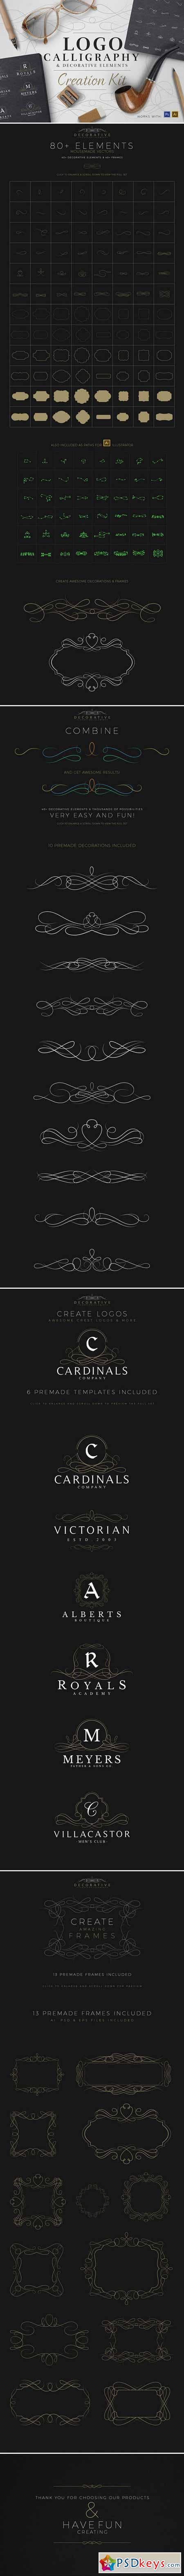 Calligraphy & Logo Creation Kit 452060